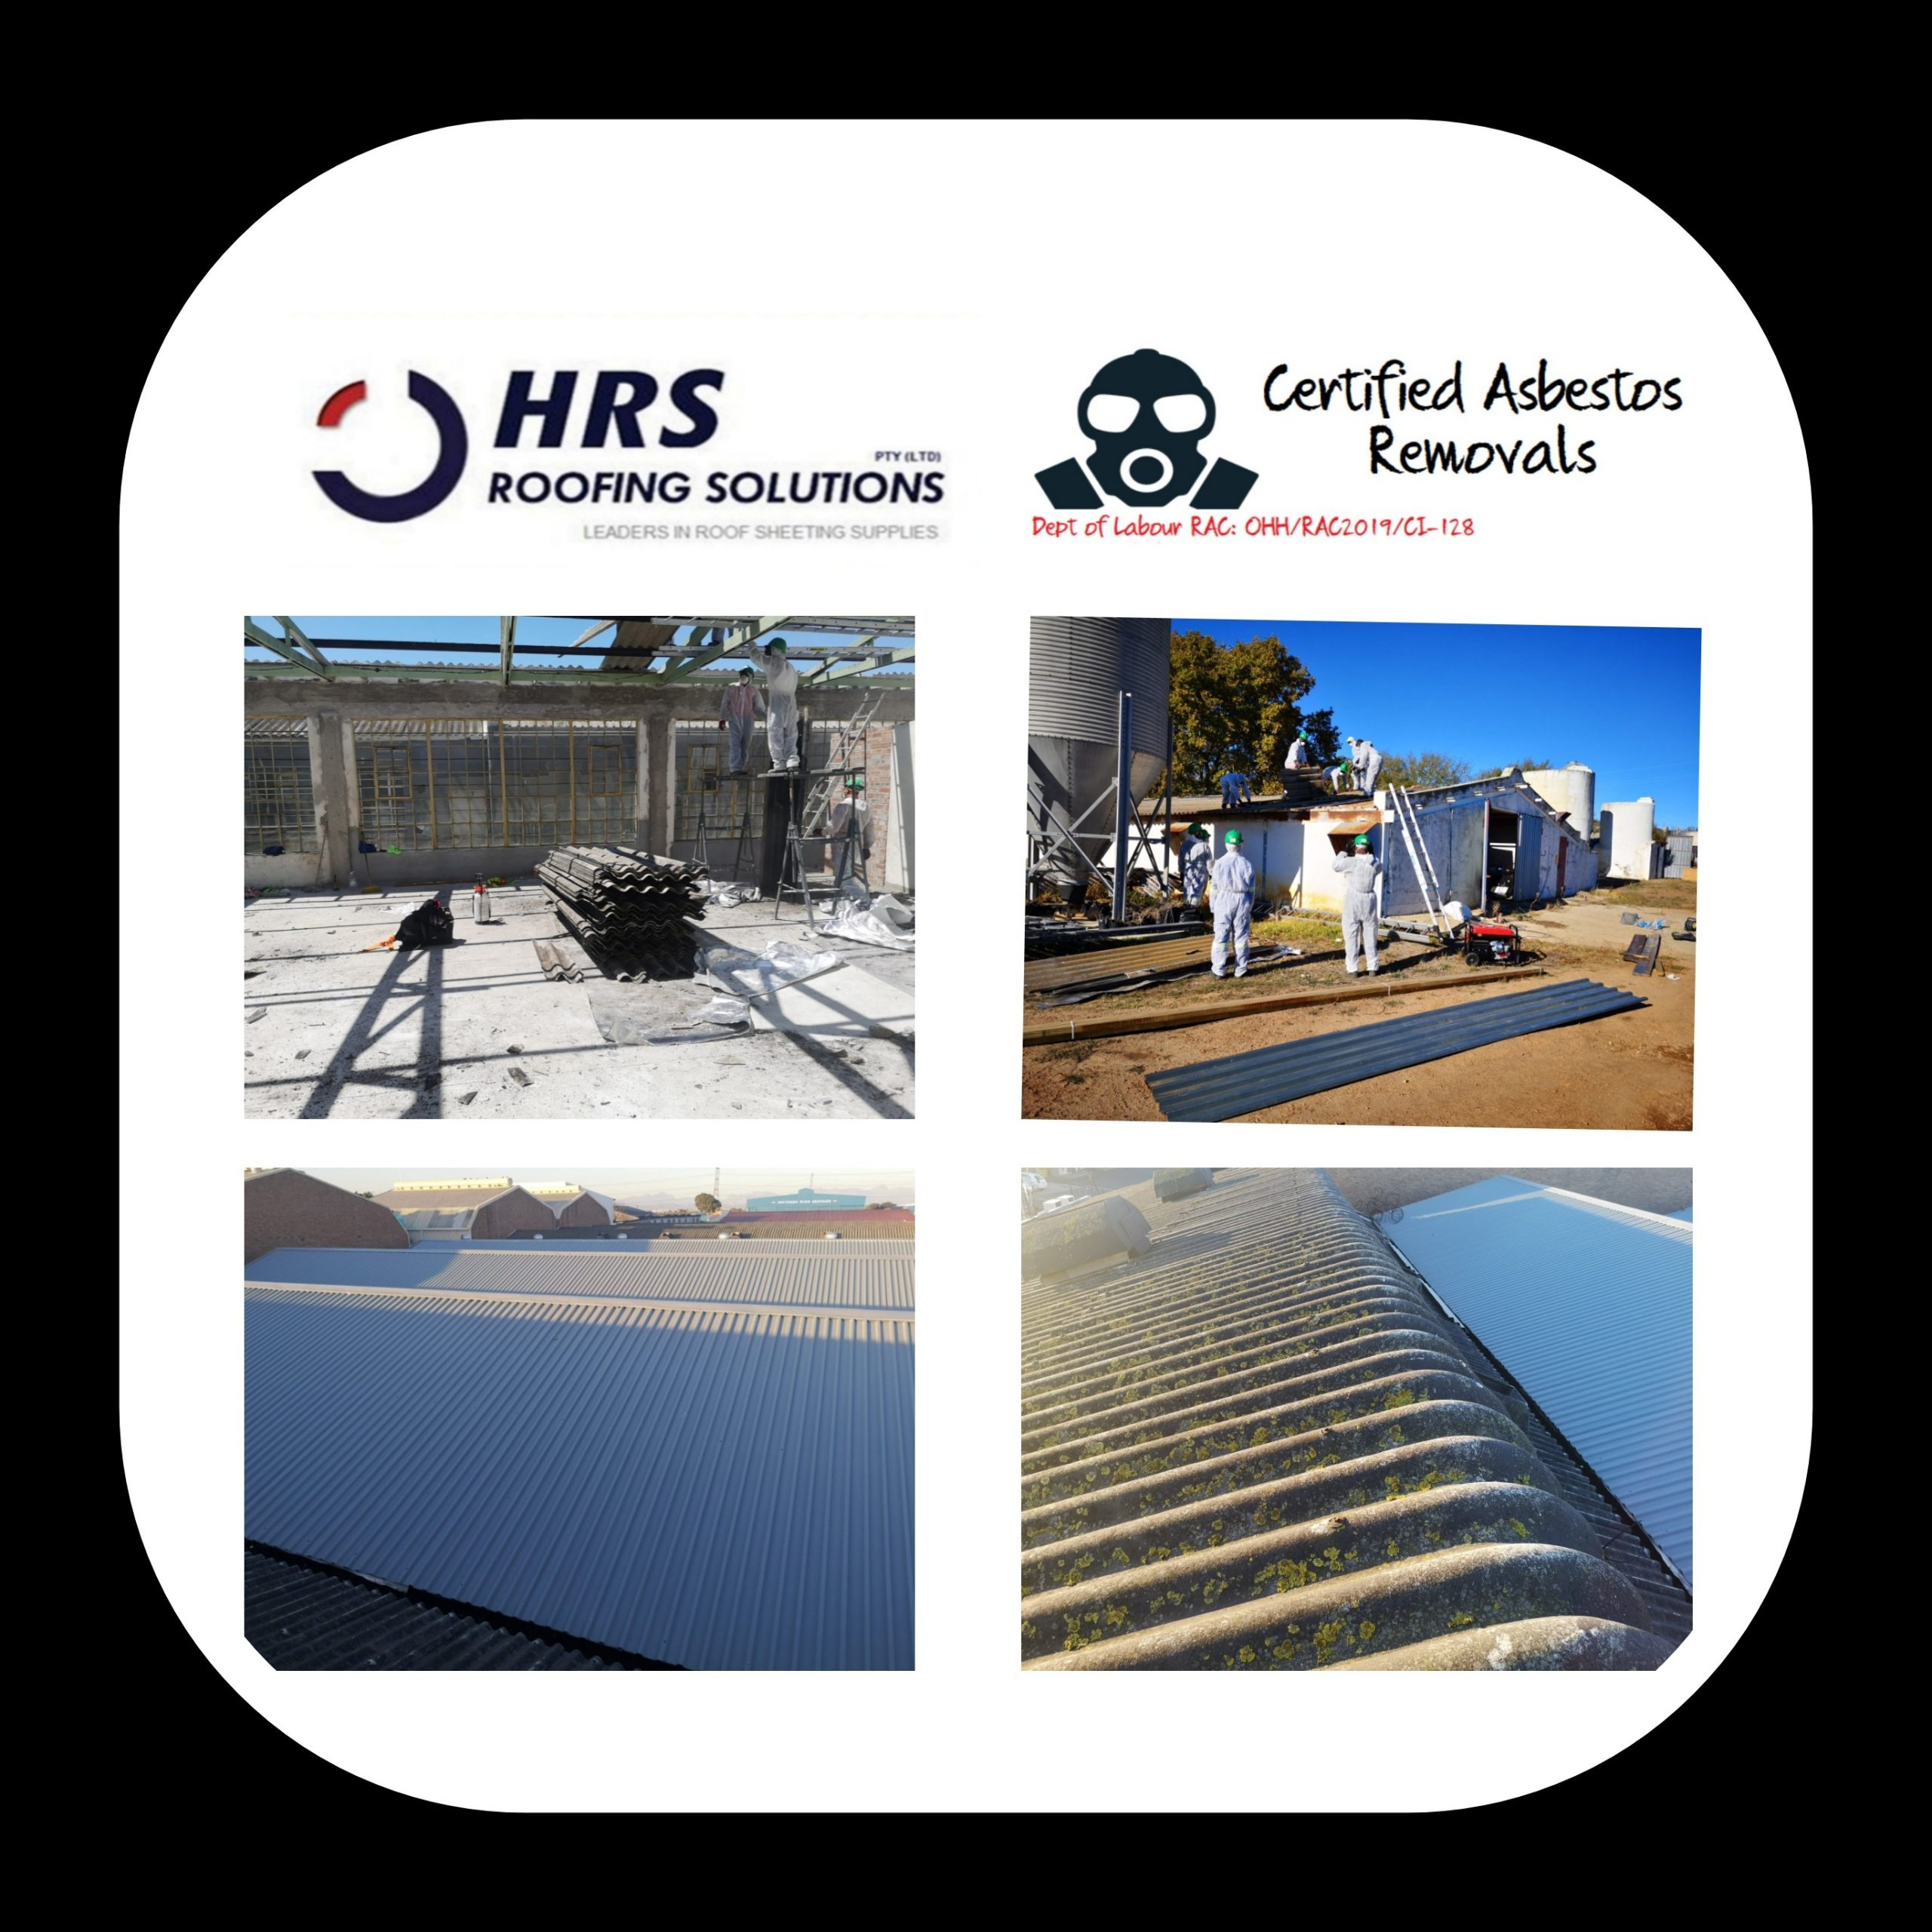 hrs roofing solutions roofing supplier cape Town Colorbond